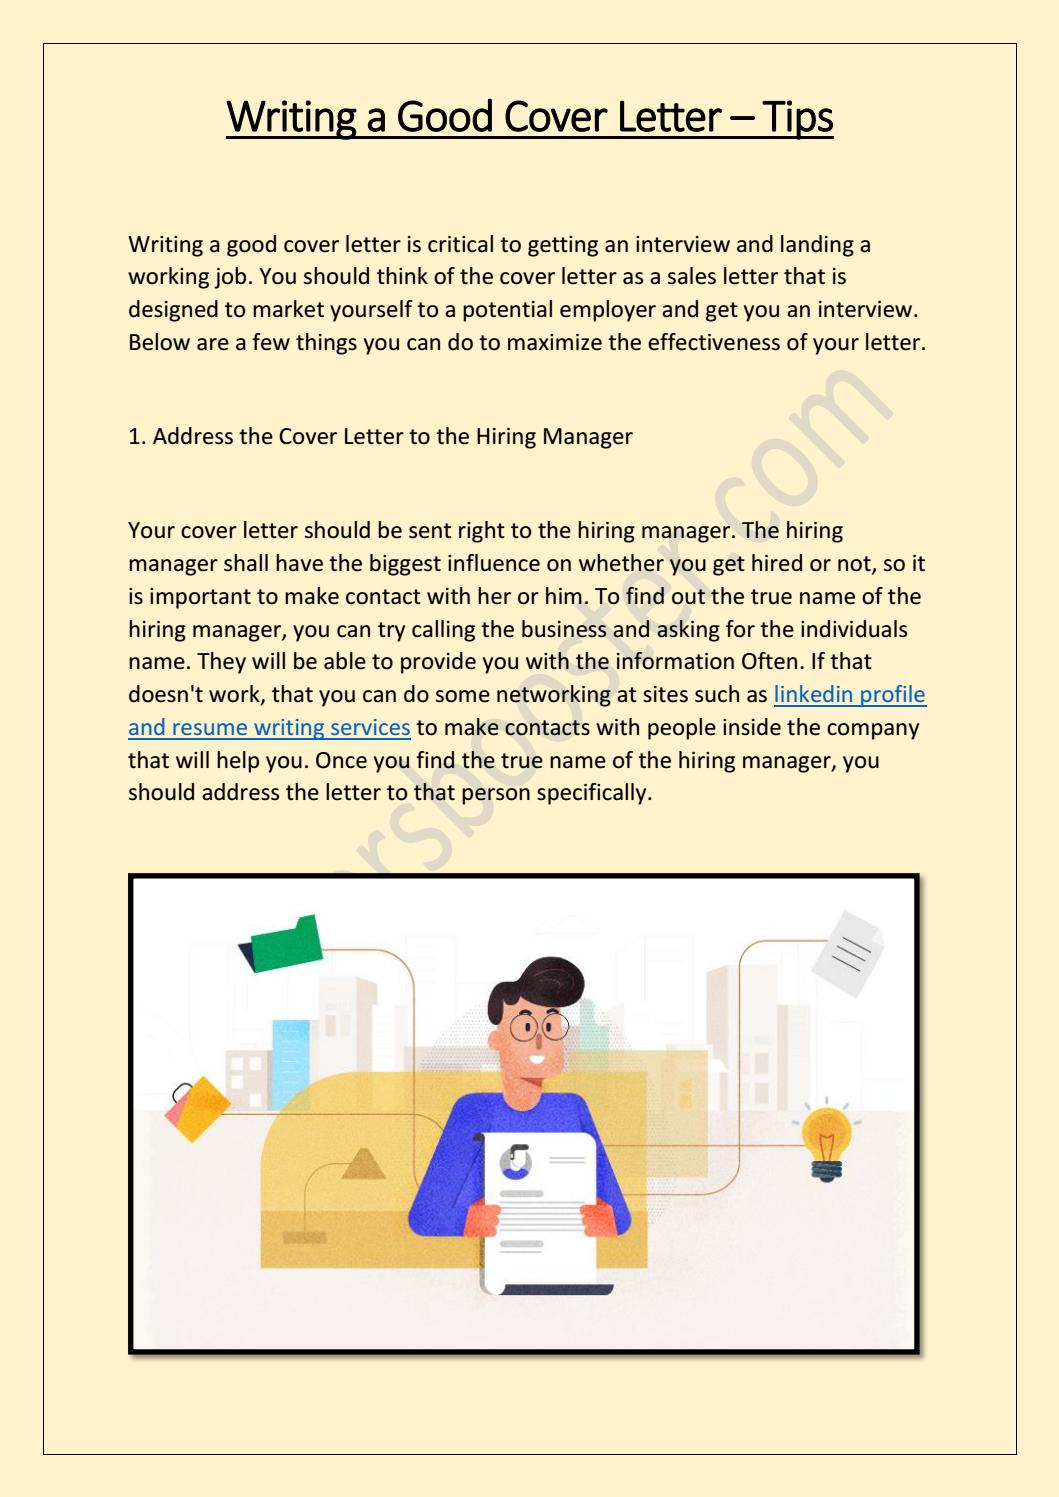 Tips To Writing A Good Cover Letter from image.isu.pub